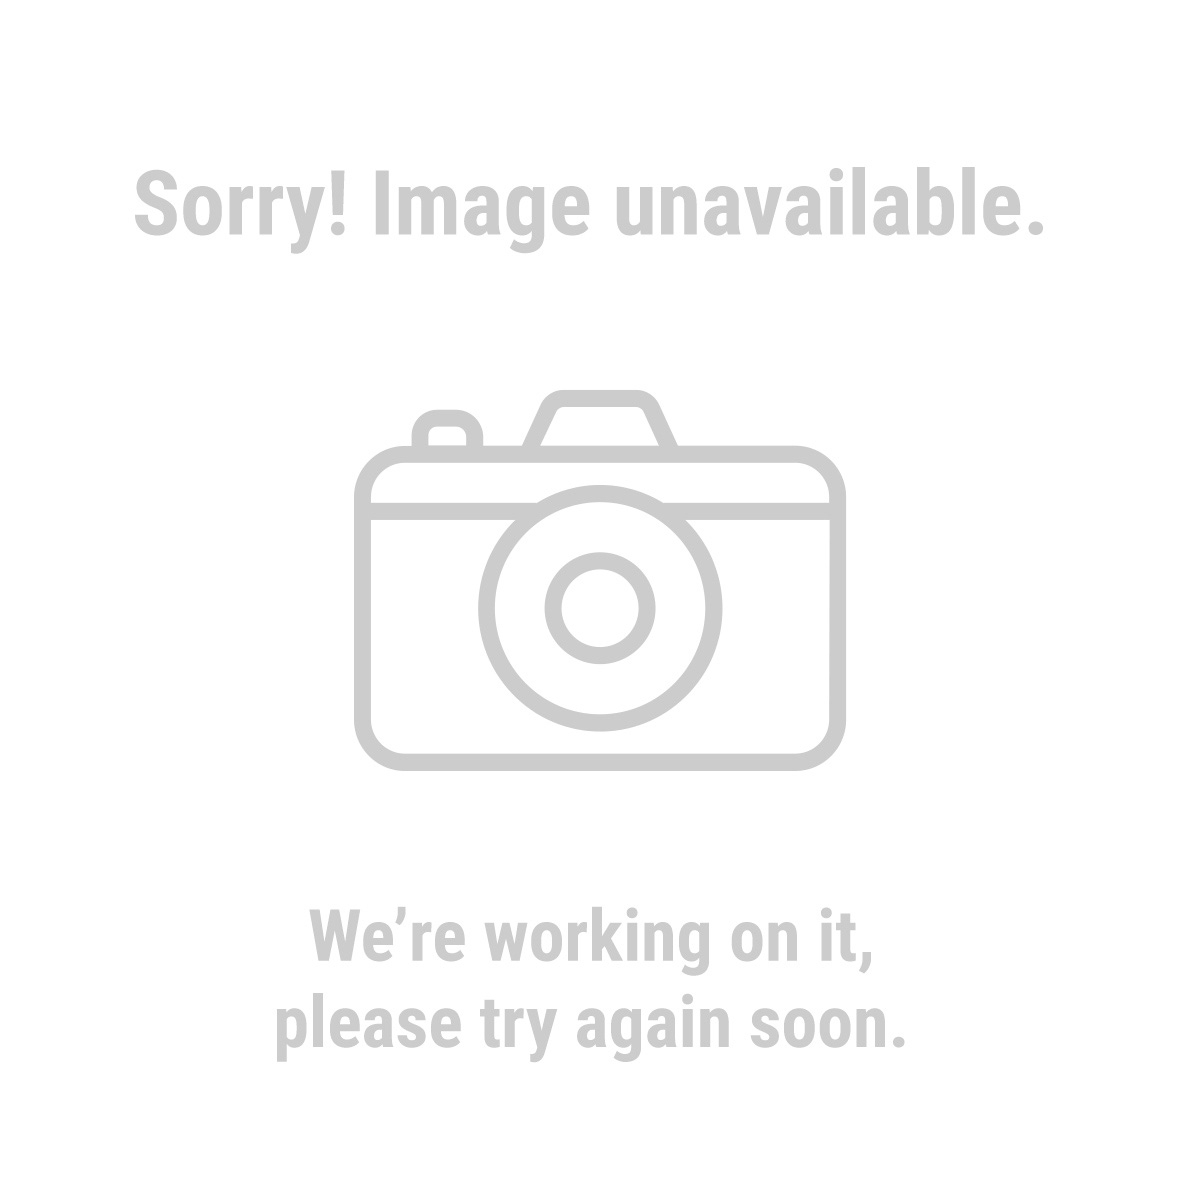 Pittsburgh 37824 46 Piece Bolt-Type Wheel Puller Set